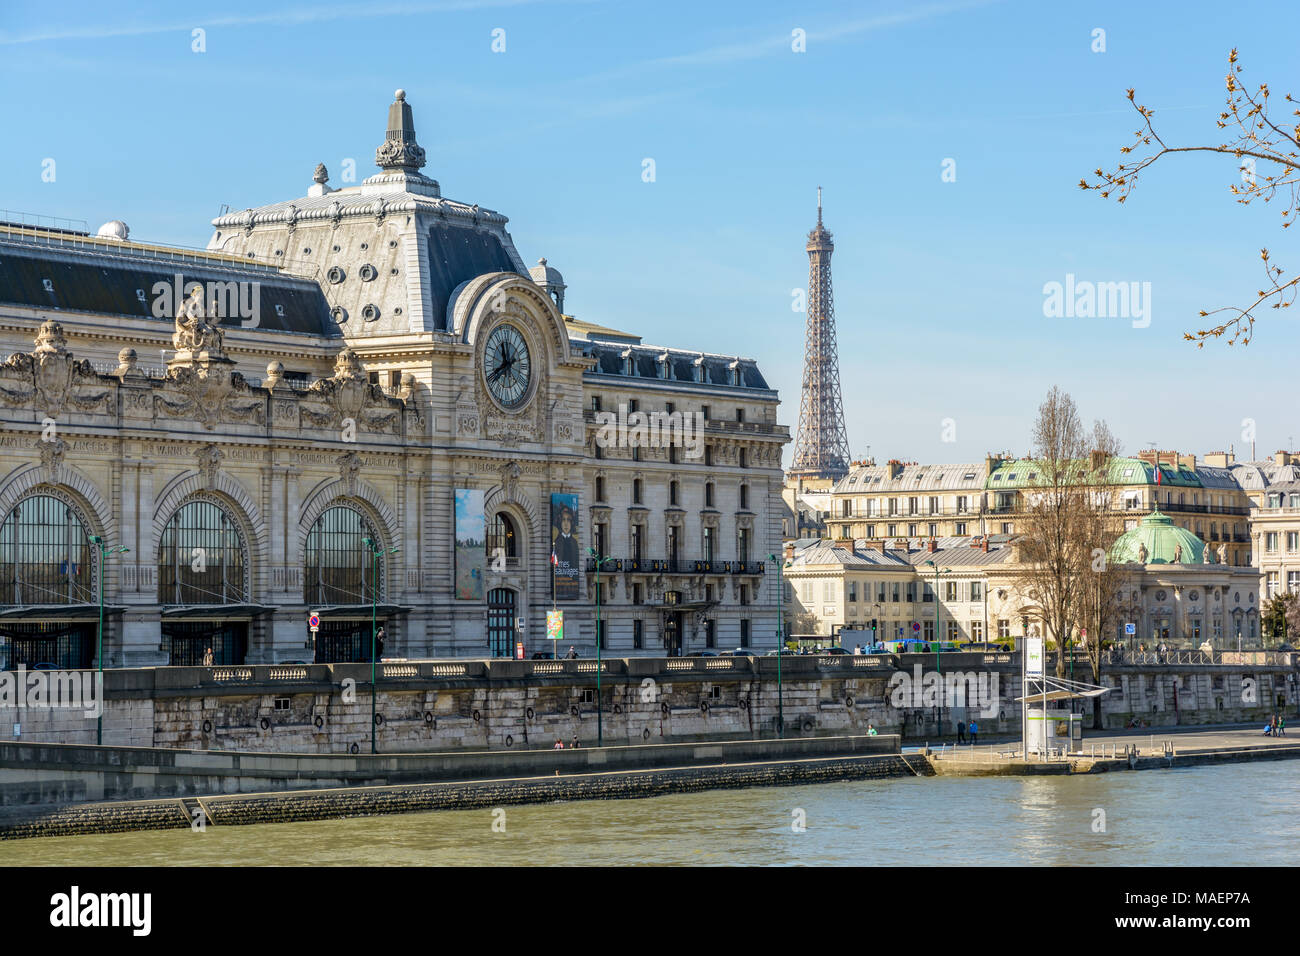 Paris, France - March 14, 2018: View of the facade of the former Orsay train station which houses the Orsay museum since 1986, with the Eiffel tower i Stock Photo